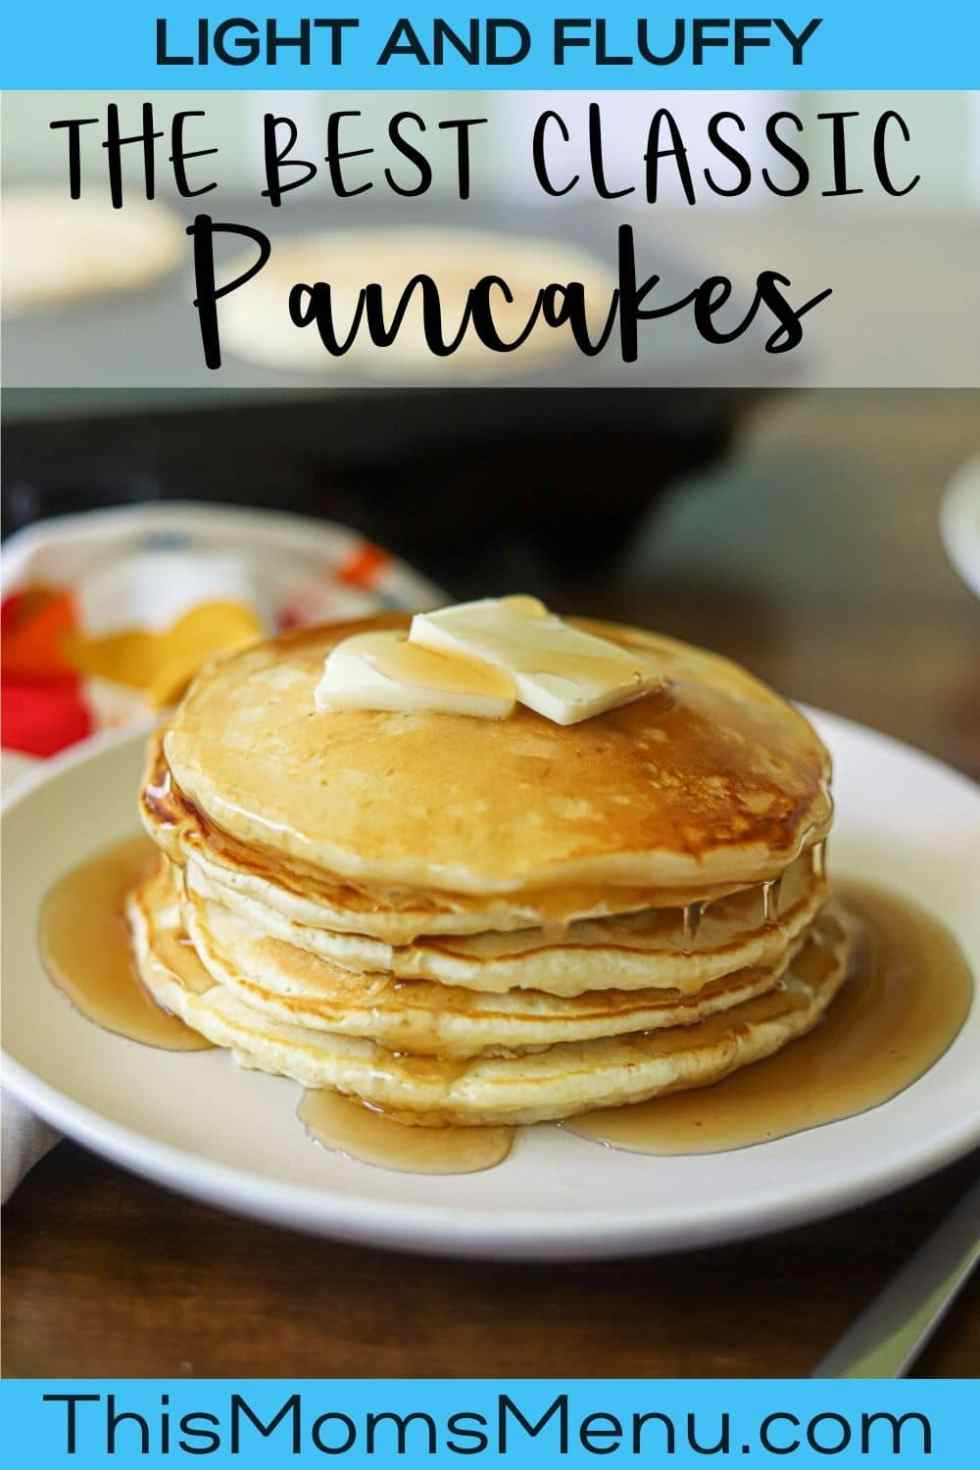 A stack of pancakes on a white plate, topped with two pats of butter and maple syrup with text overlay.